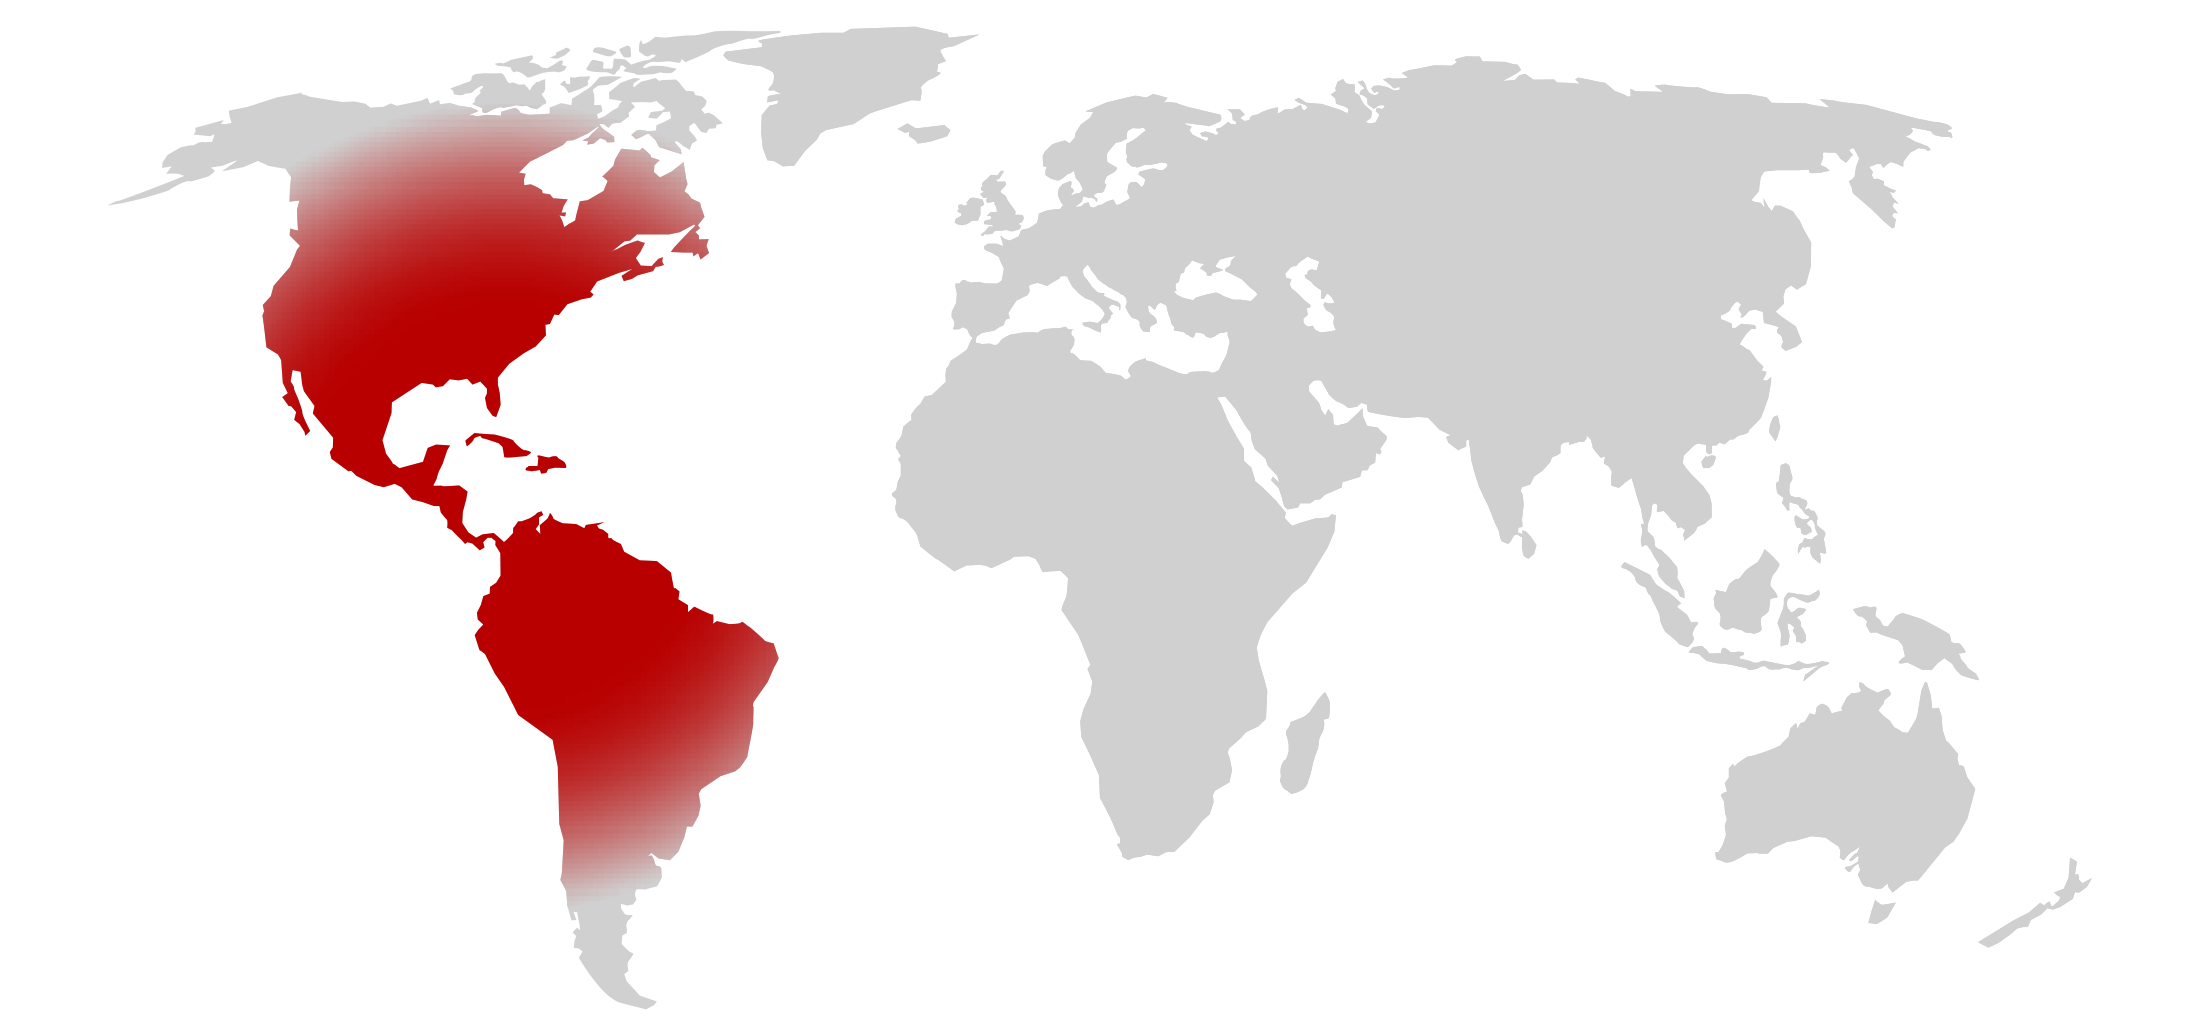 Map showing the area of Americas